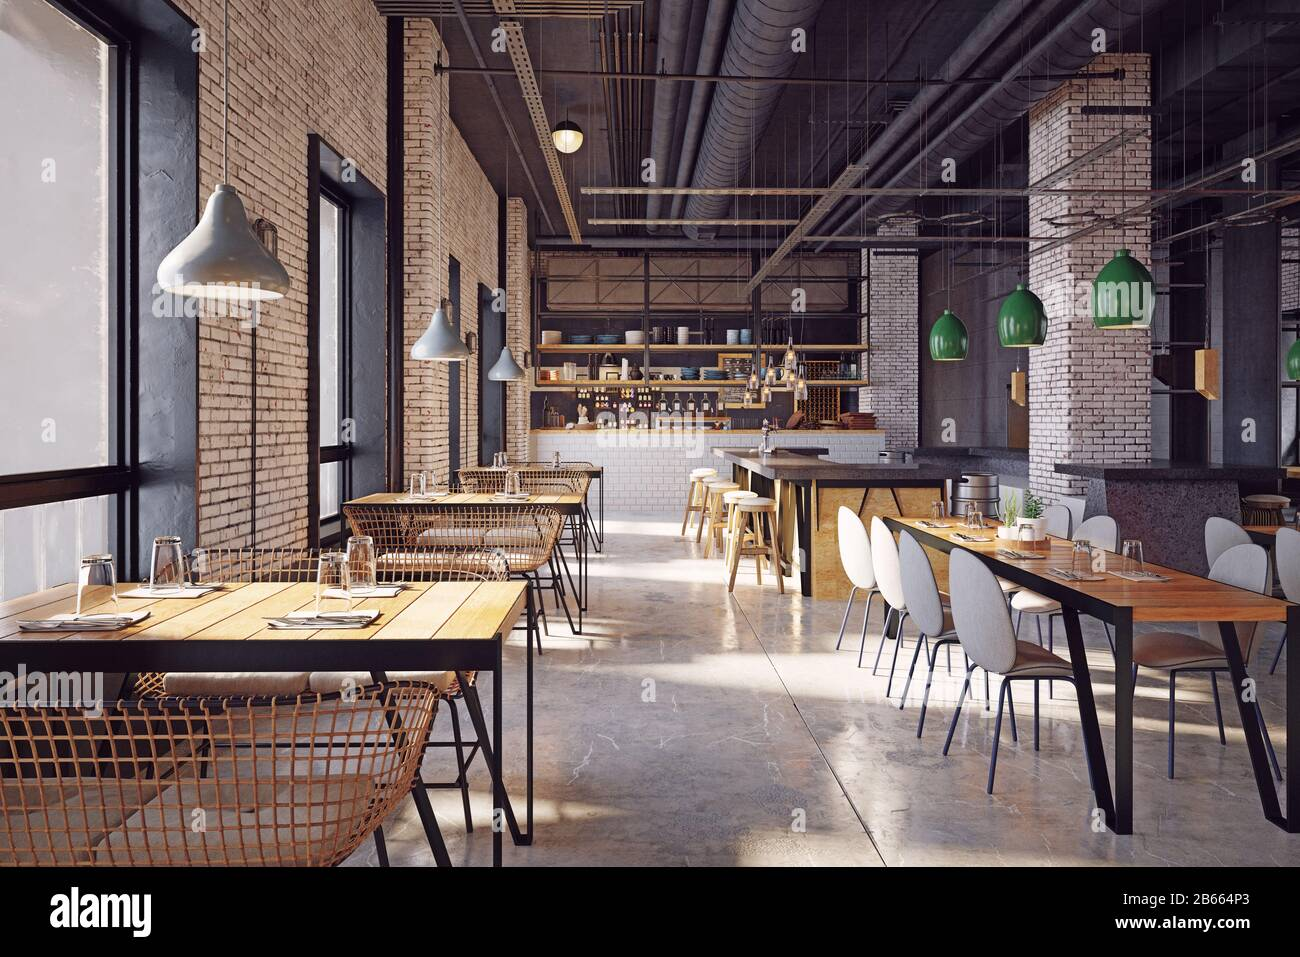 Modern Restaurant Interior Design Concept 3d Rendering Stock Photo Alamy